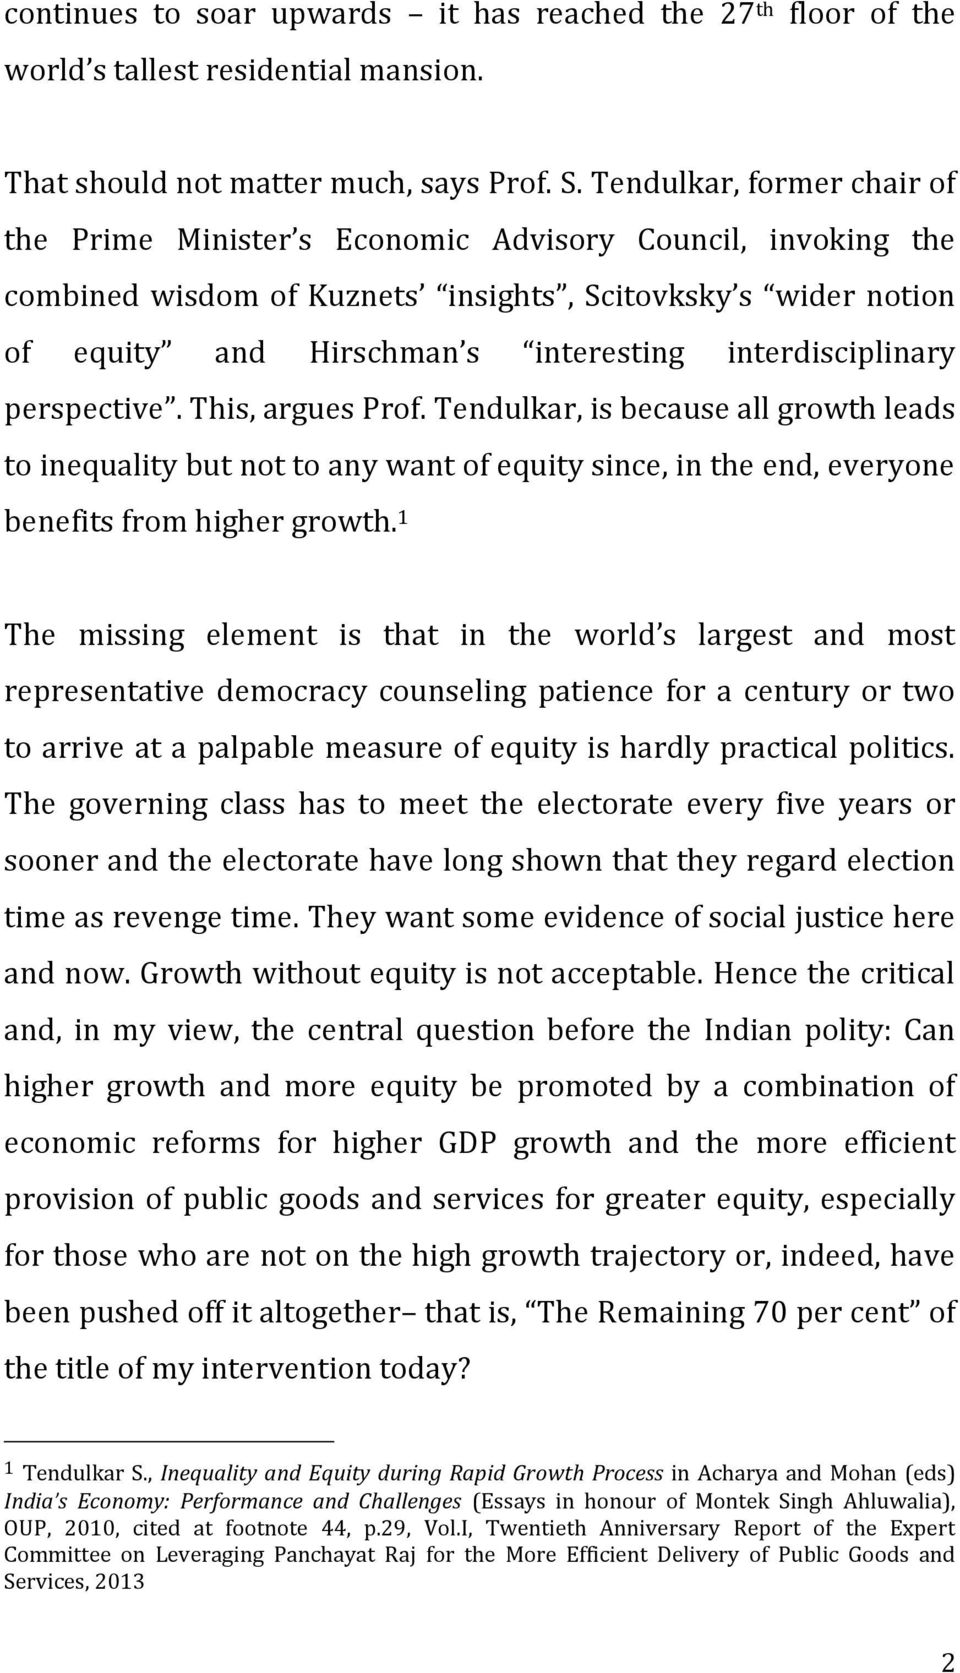 interdisciplinary perspective. This, argues Prof. Tendulkar, is because all growth leads to inequality but not to any want of equity since, in the end, everyone benefits from higher growth.